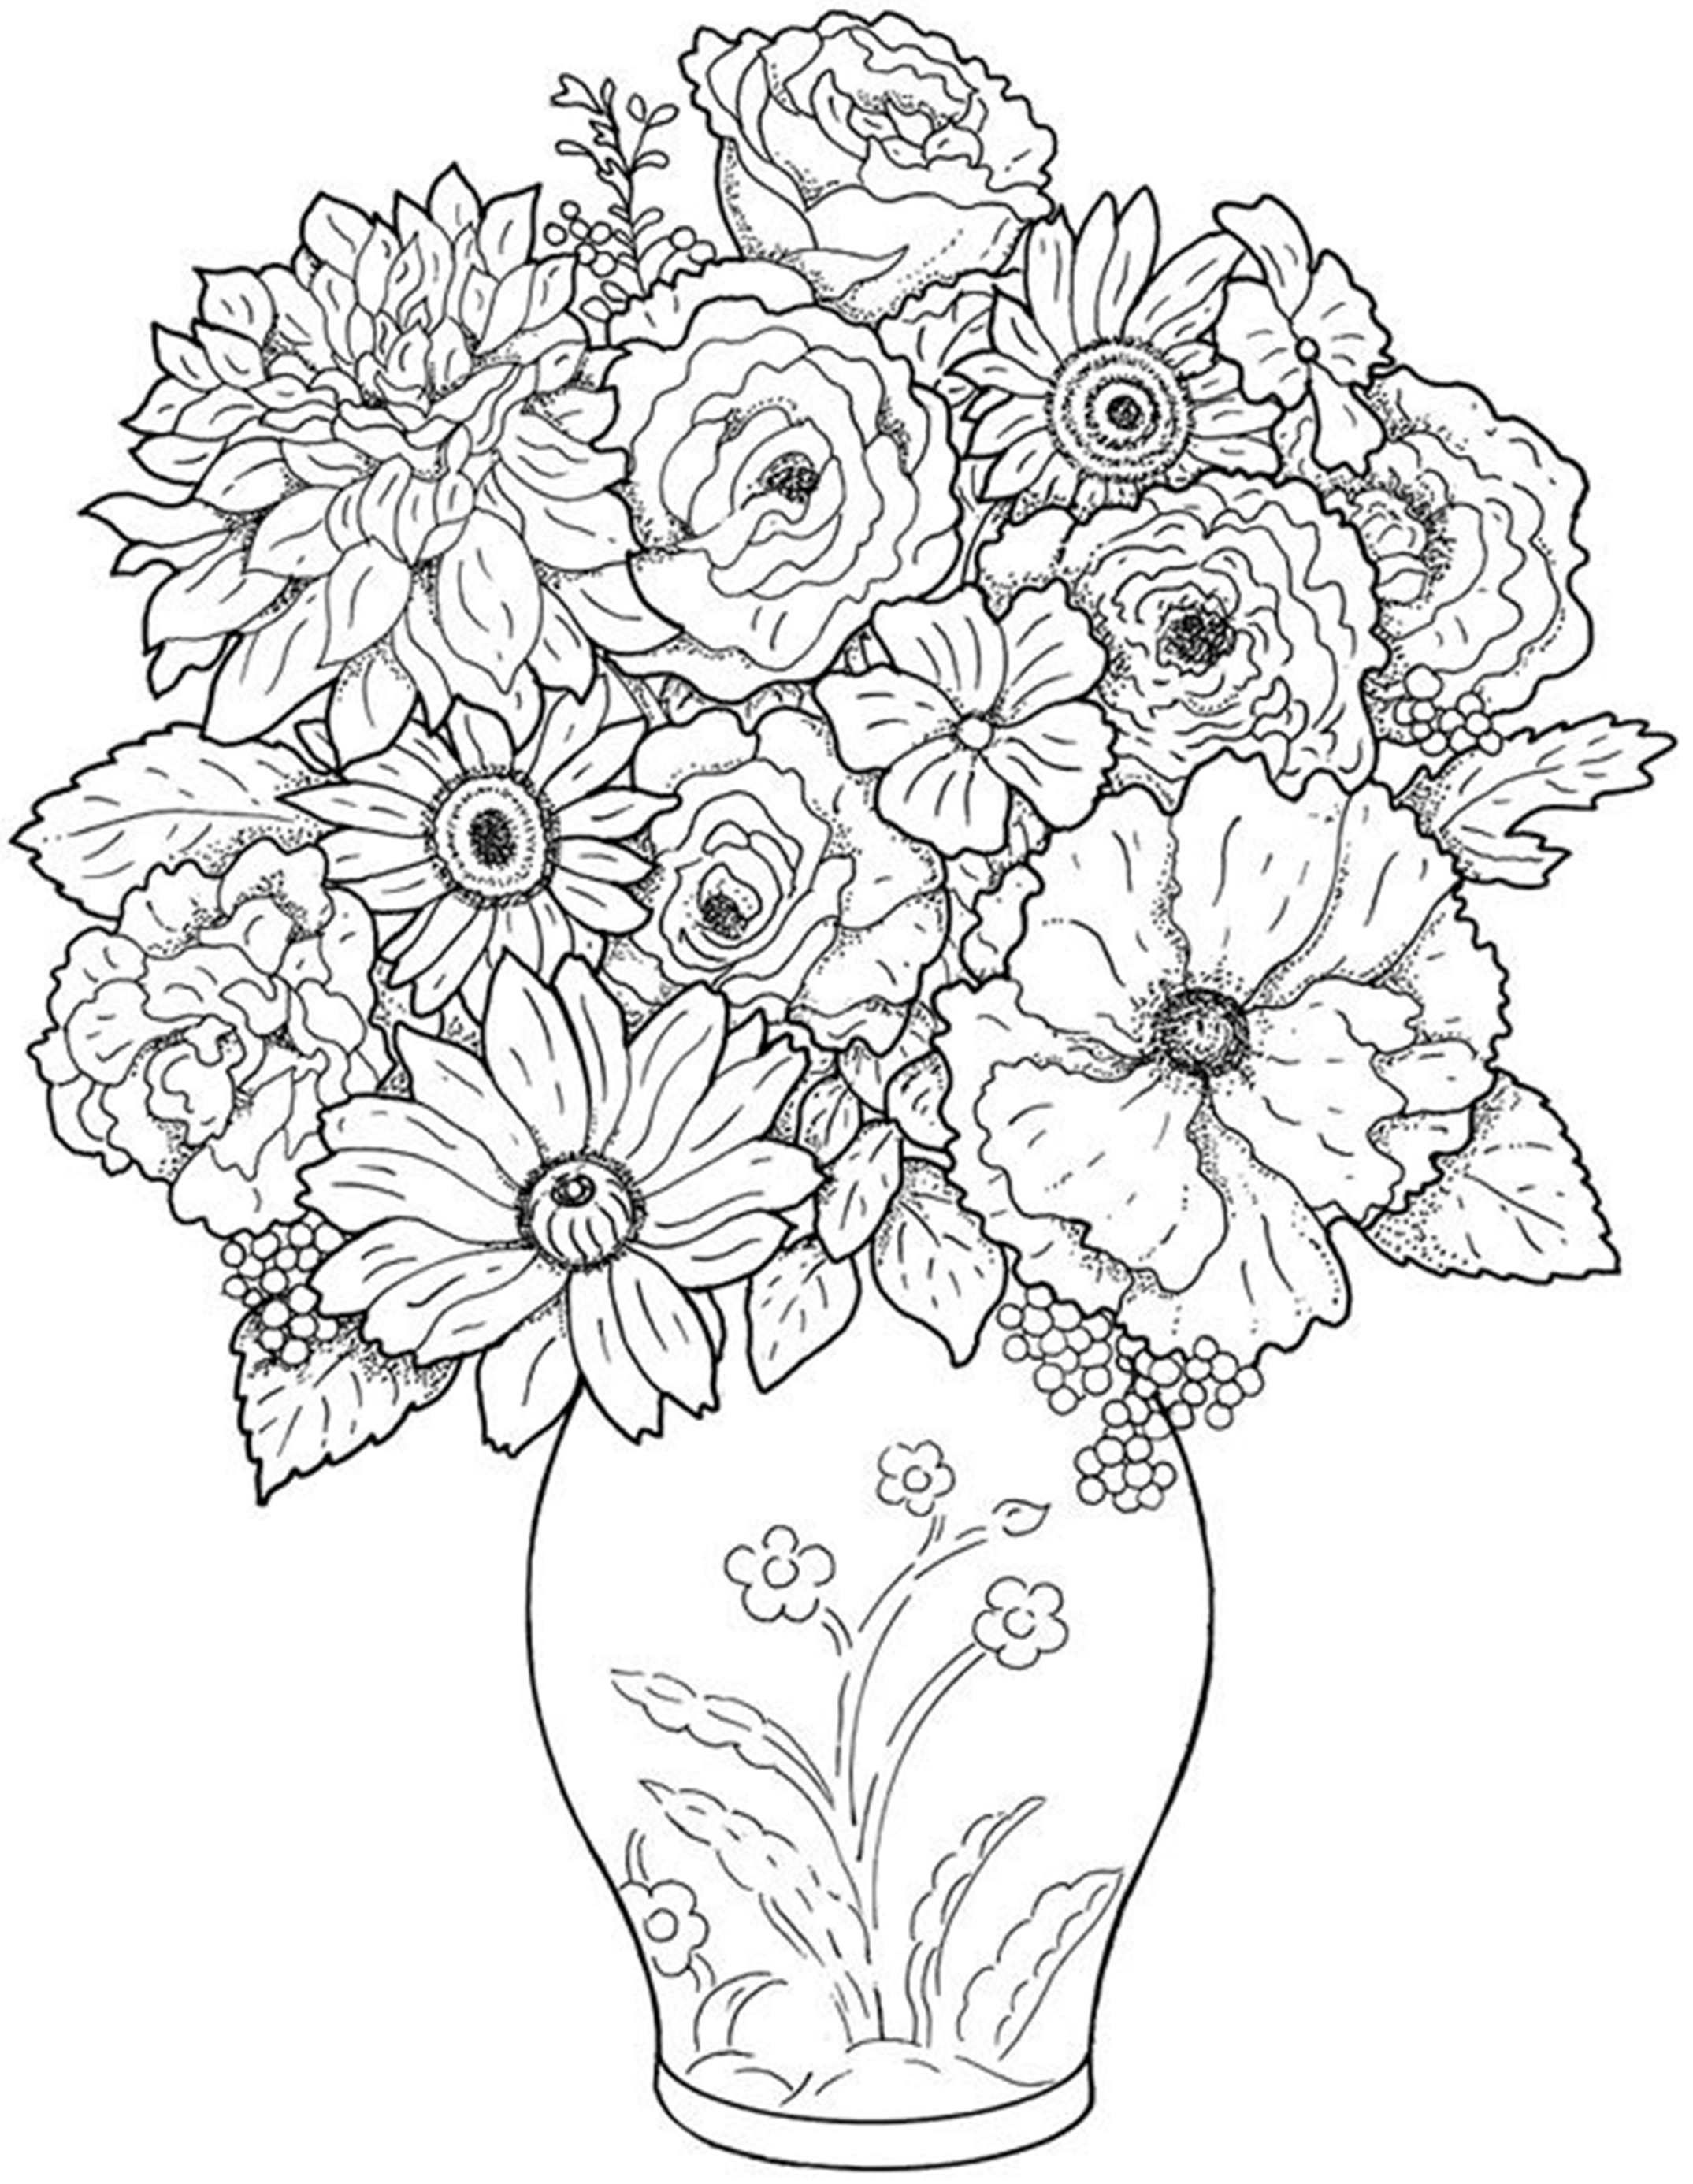 Coloring pictures to print of flowers - Free Vase Flower Coloring Pages